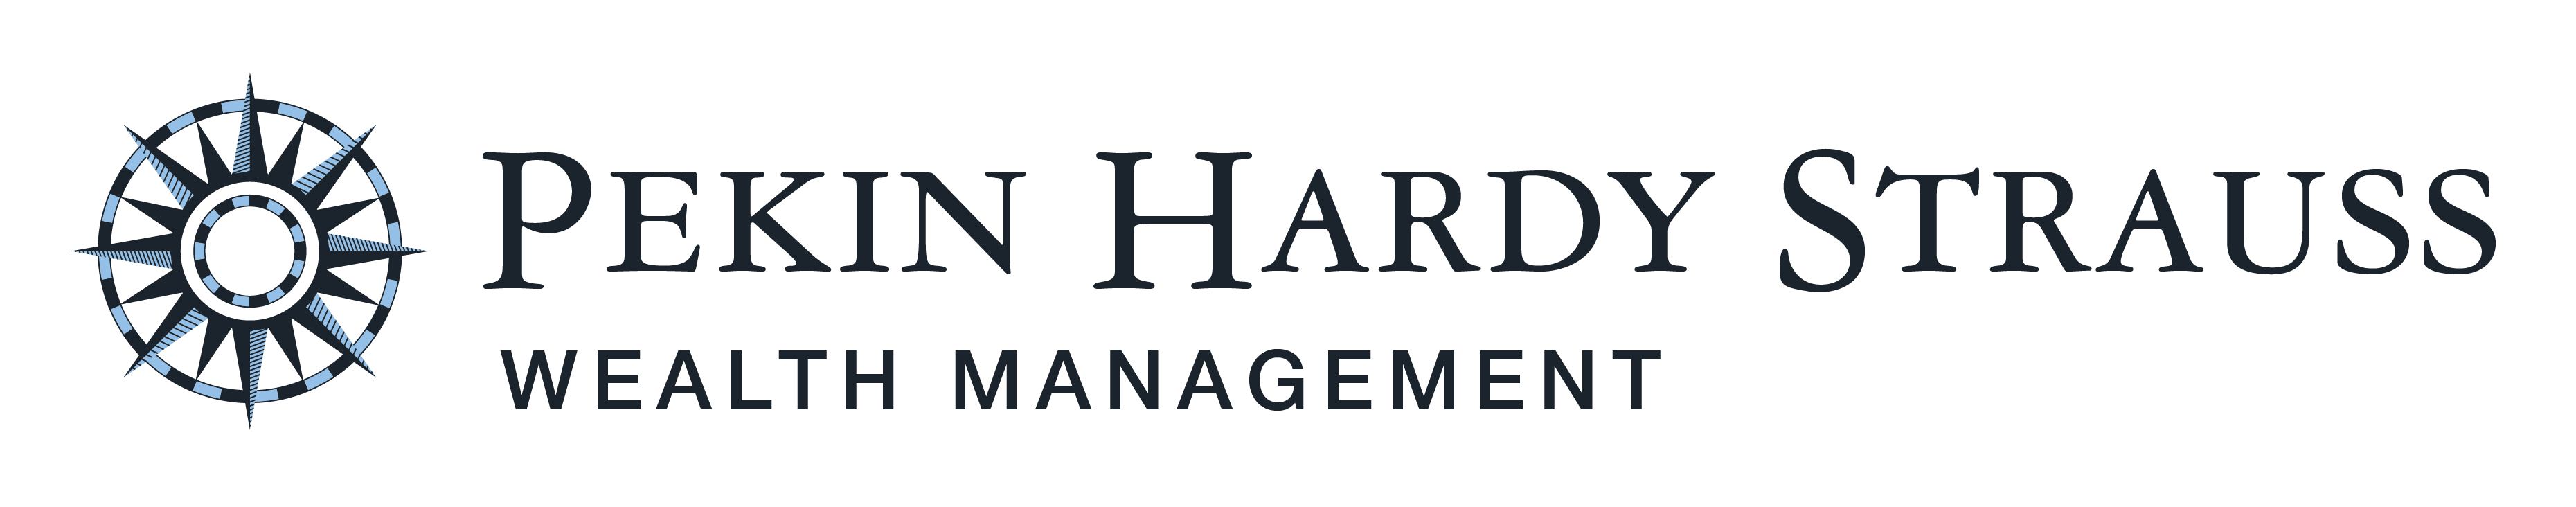 pekin hardy strauss wealth management logo